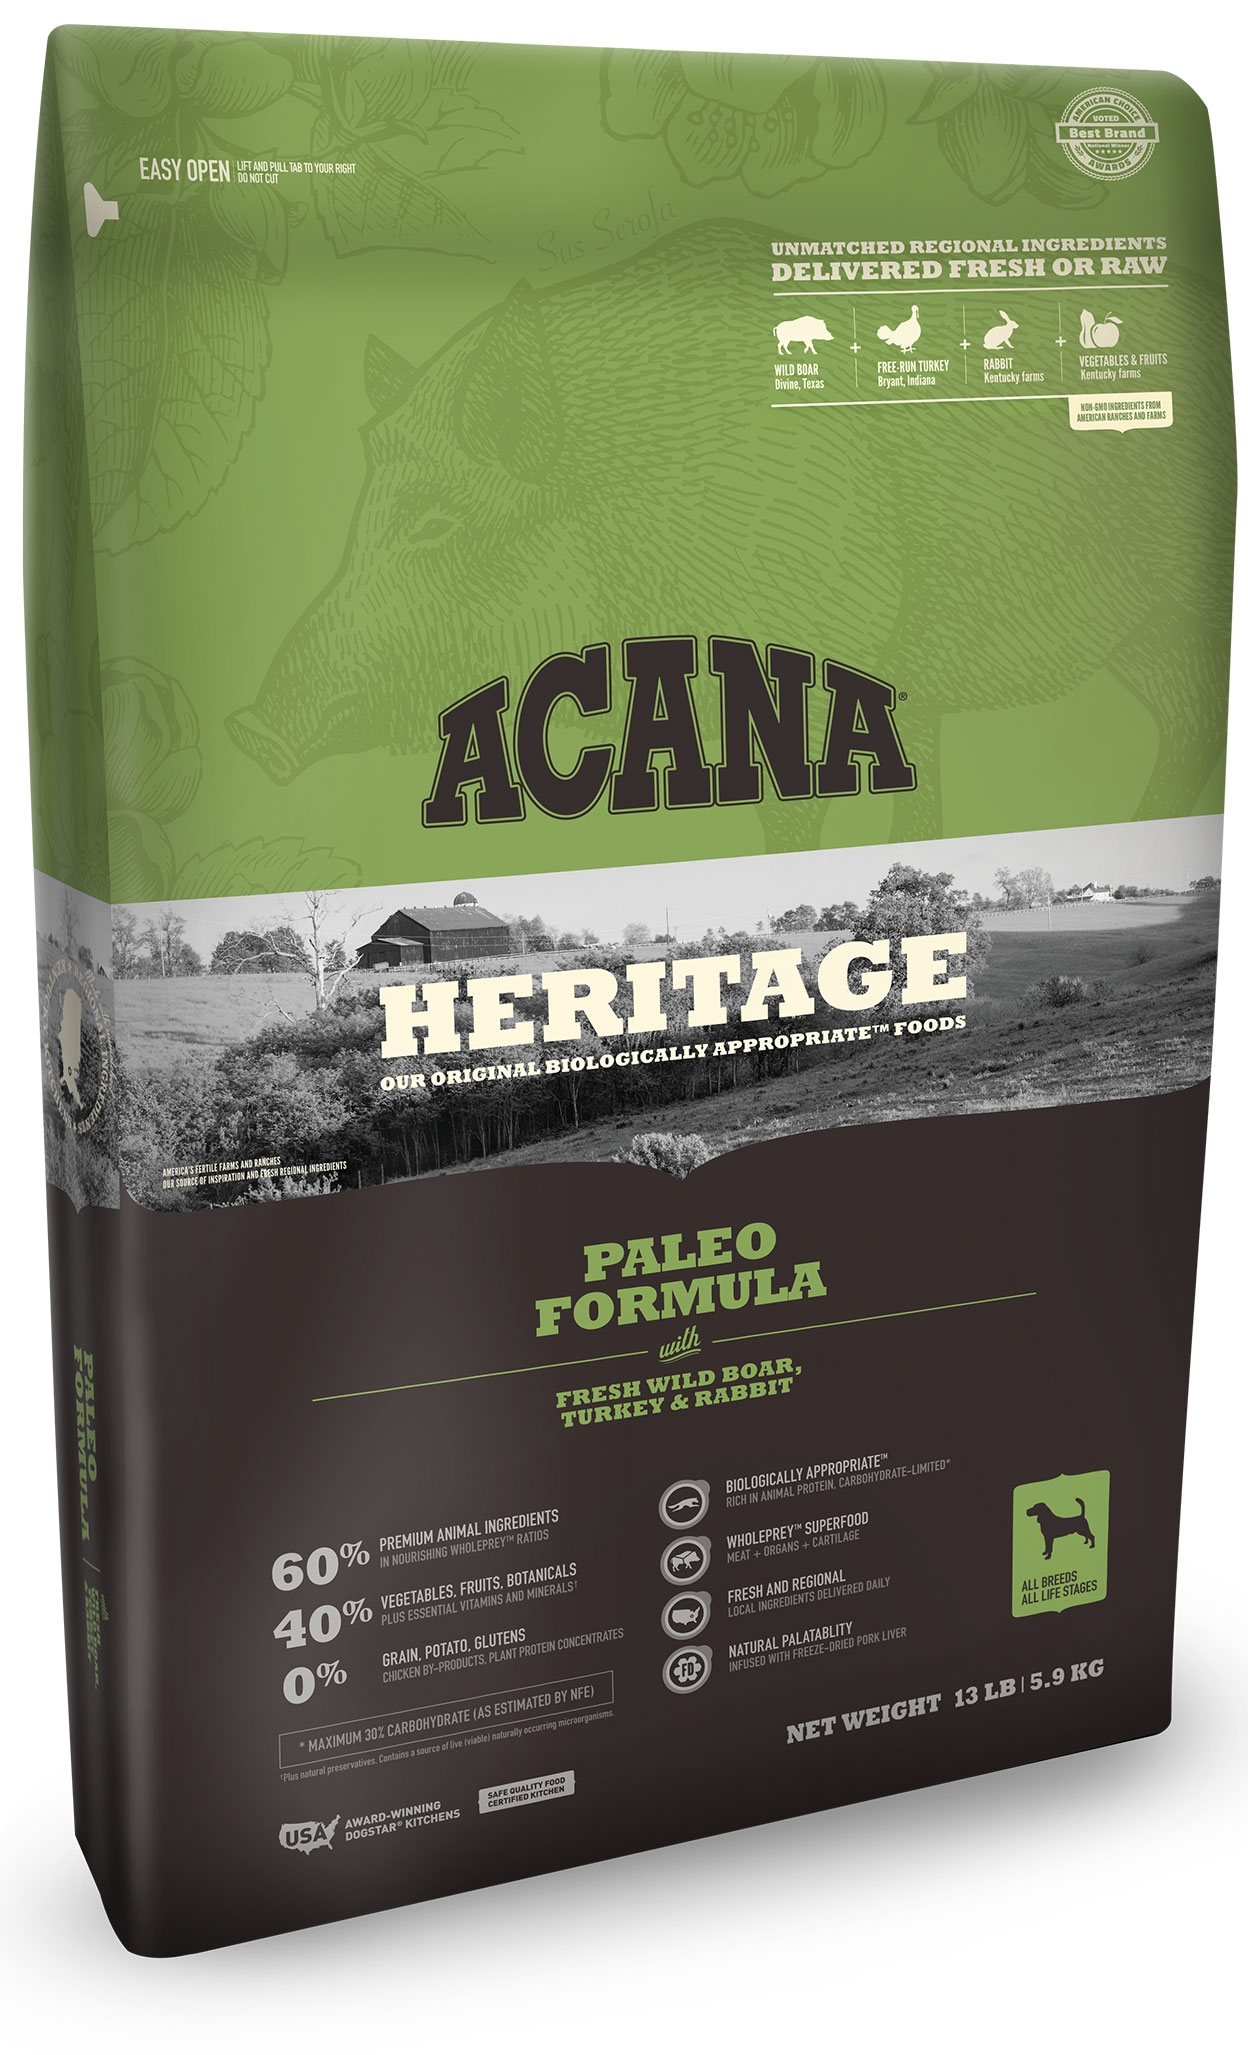 For Food Sensitivities Try Acana Heritage Paleo Dry Dog Food